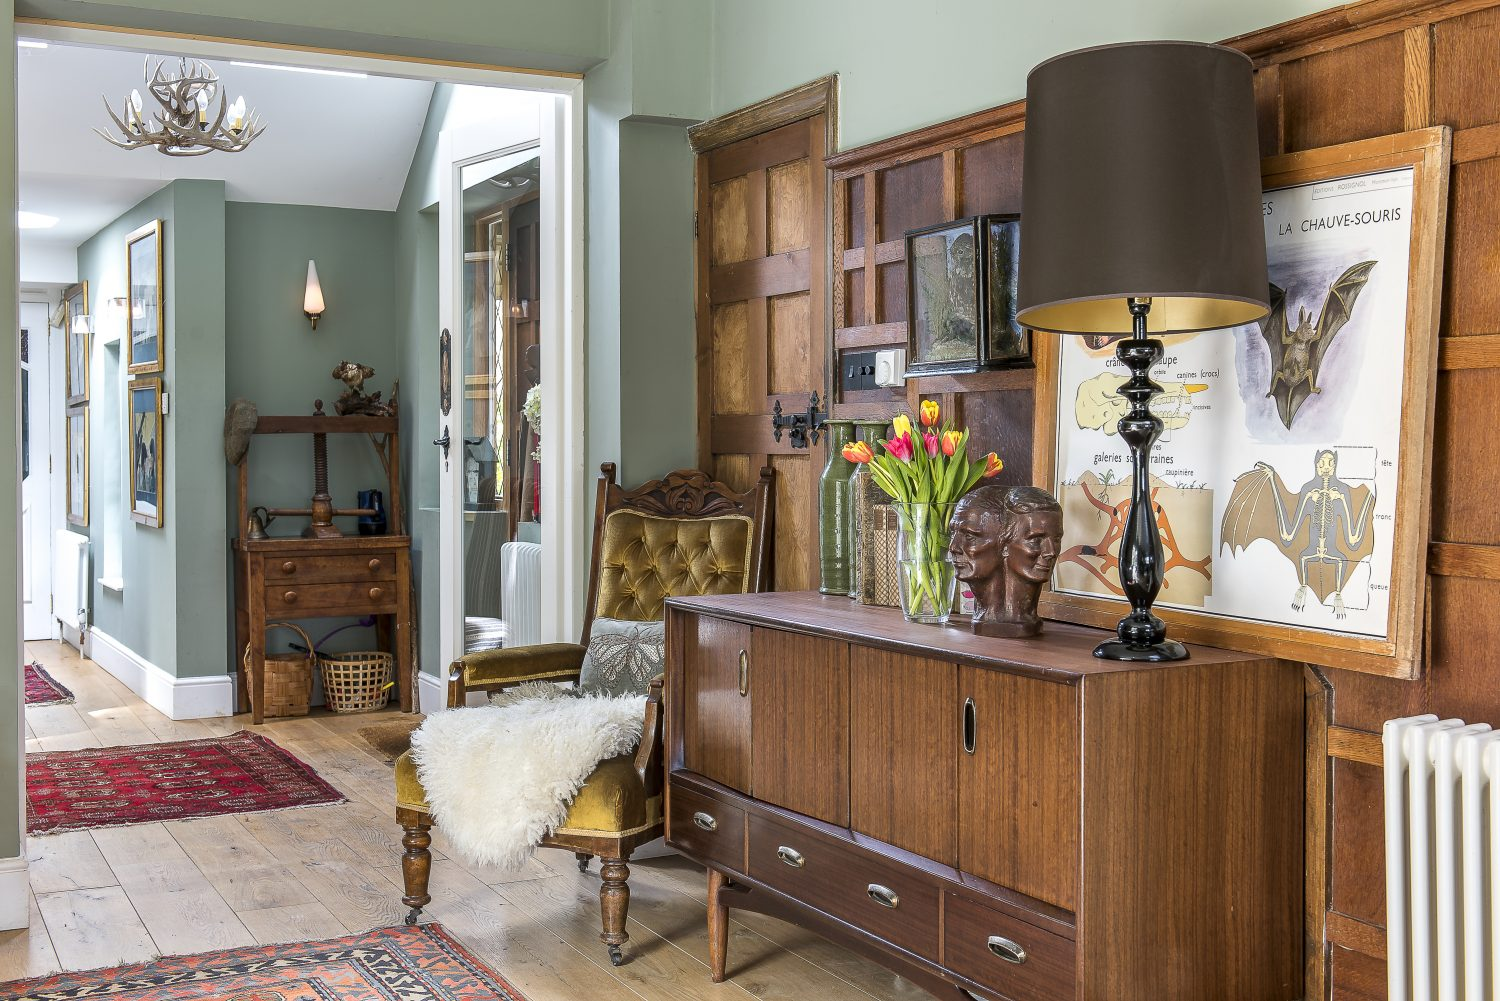 In each room Clare has cleverly combined different styles and eras all put together with ease